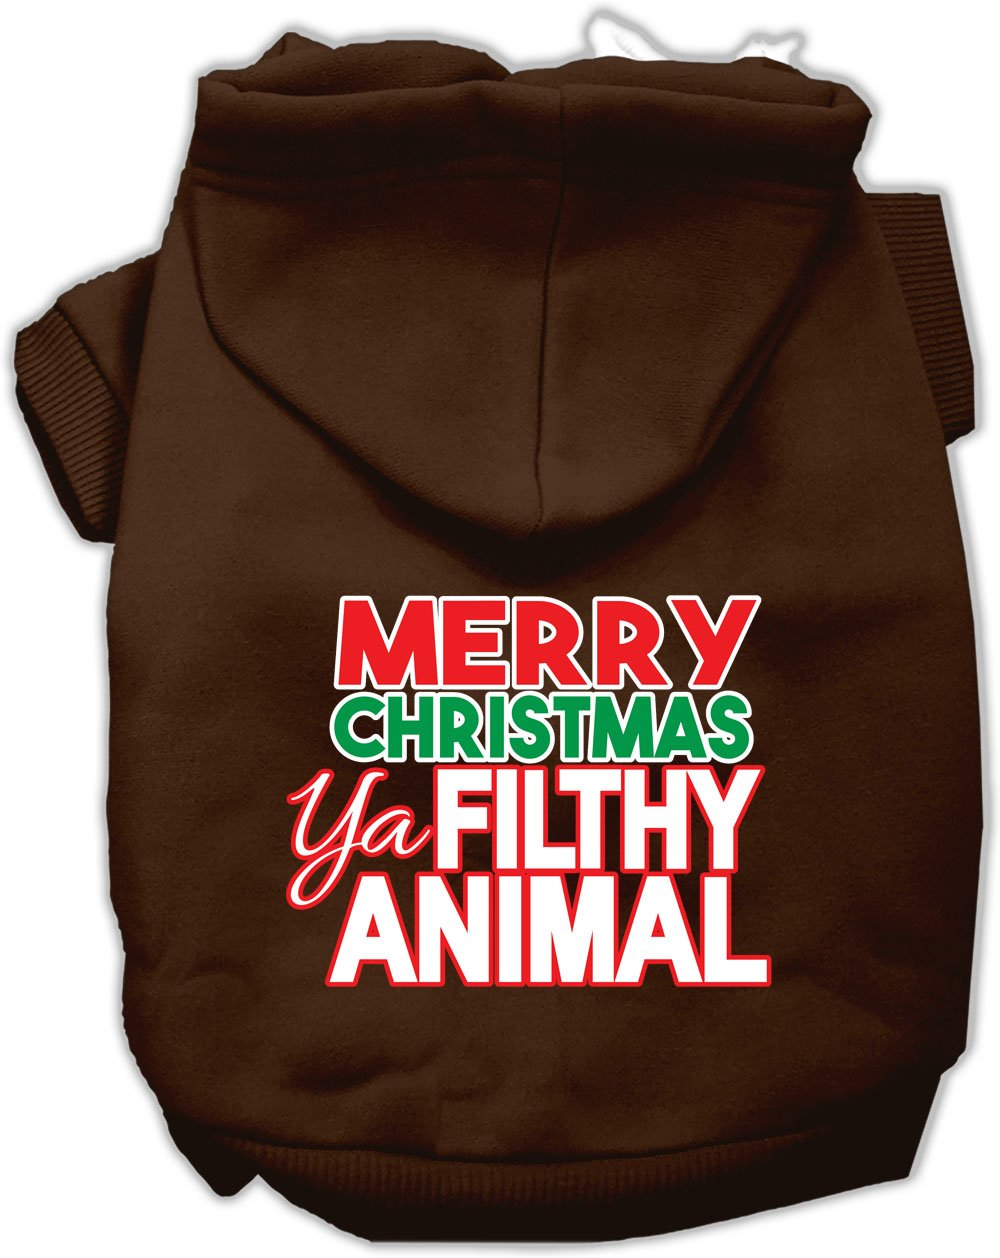 Mirage Pet Products 62-148 XXLBR Ya Filthy Animal Screen Print Brown Pet Hoodie, XX-Large